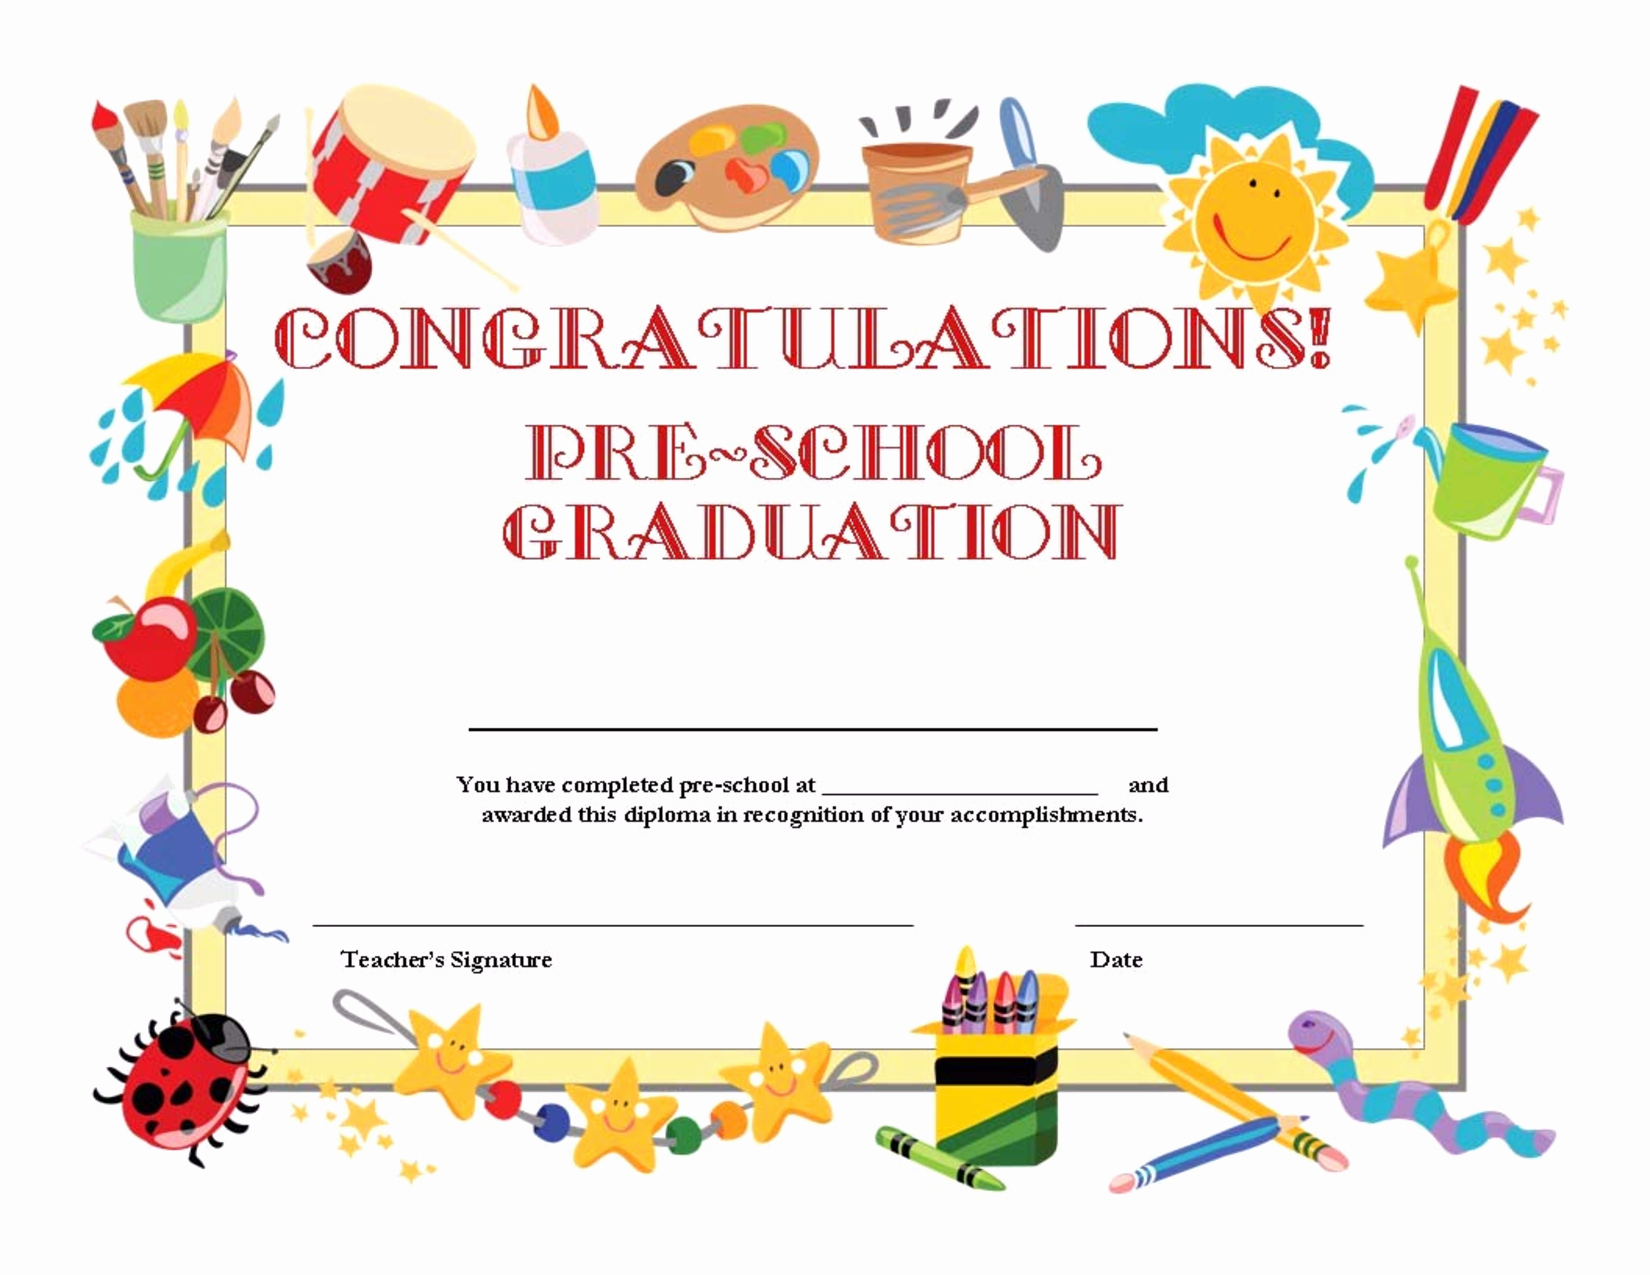 Kindergarten Graduation Invitation Template New Preschool Graduation Invitation Templates Printable